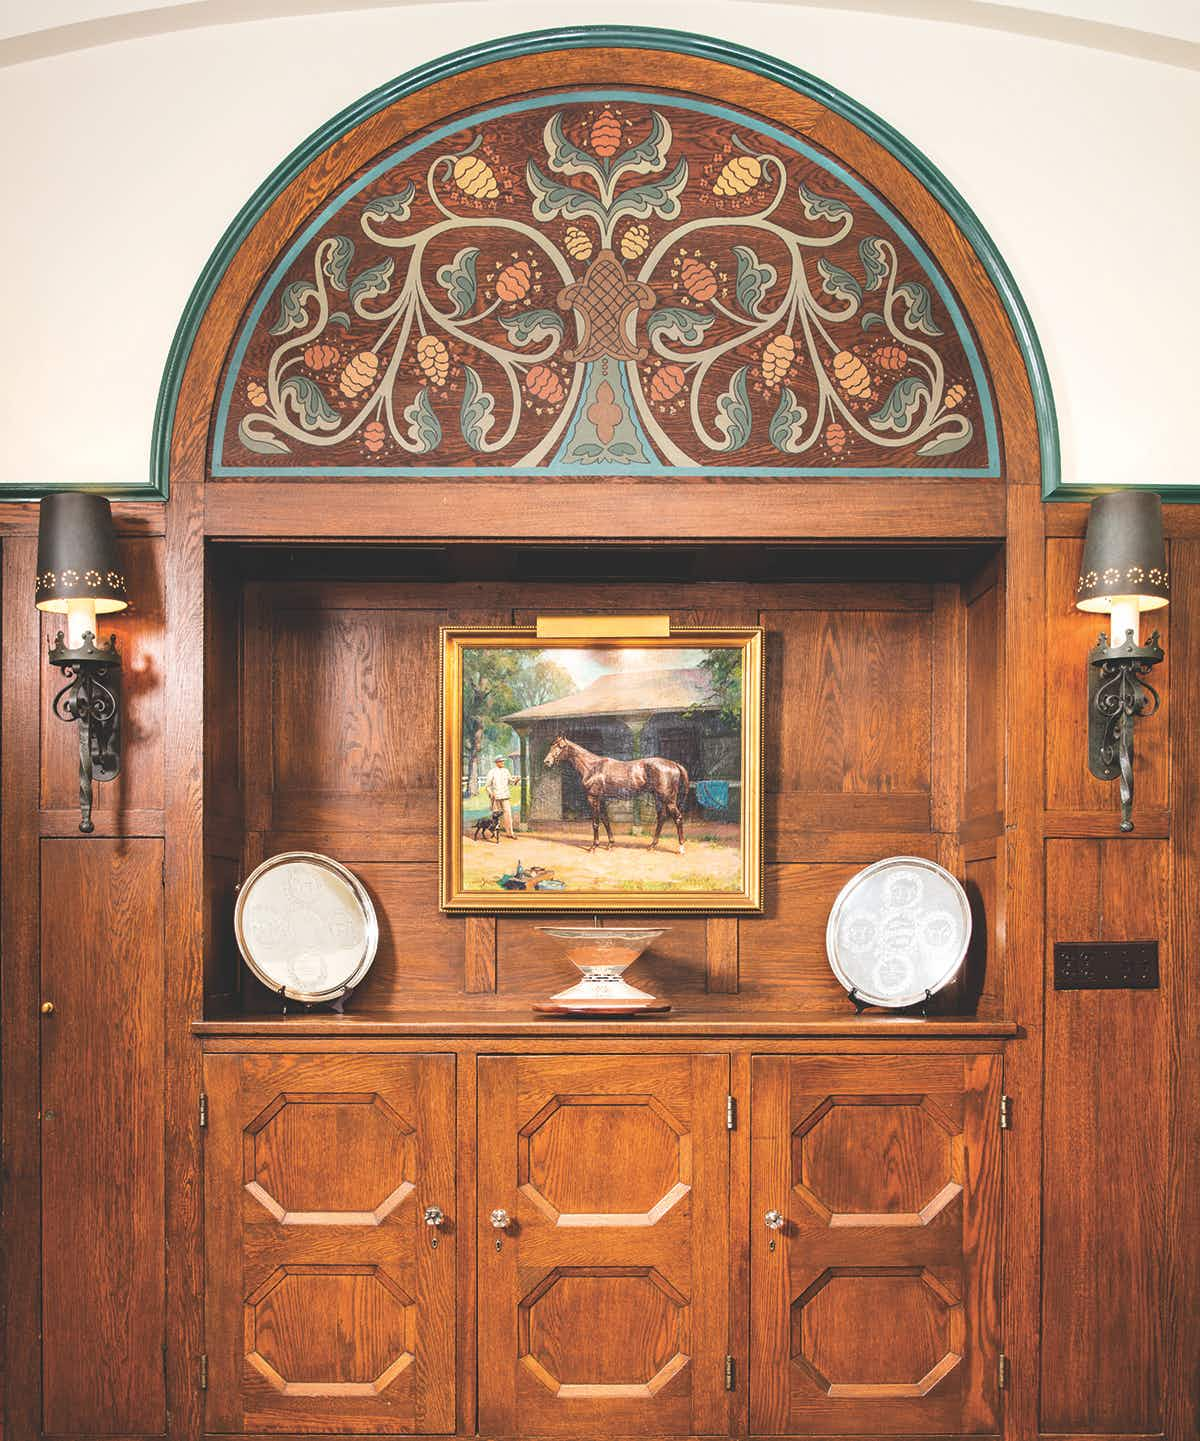 A Tiffany-designed China cabinet in the dining room now serves as a display case for the Belmont Stakes trophies won by King Ranch Thoroughbreds and for the Triple Crown trophy won by Assault.